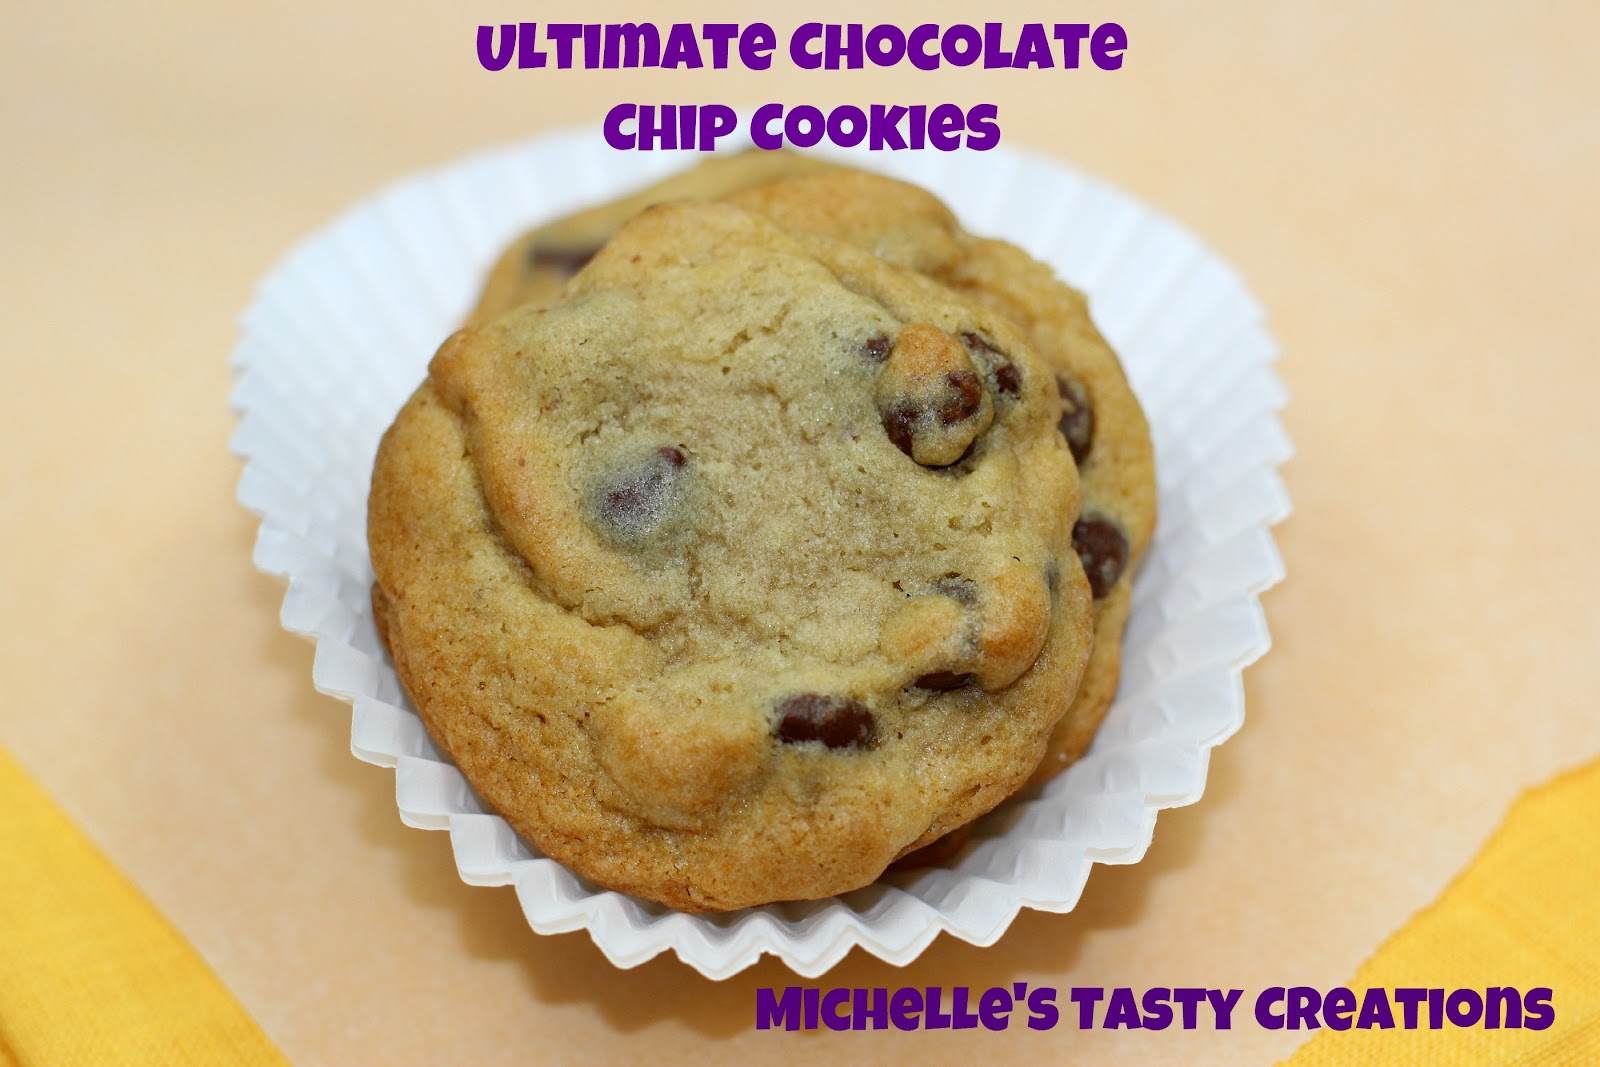 Michelle's Tasty Creations: Ultimate Chocolate Chip Cookies